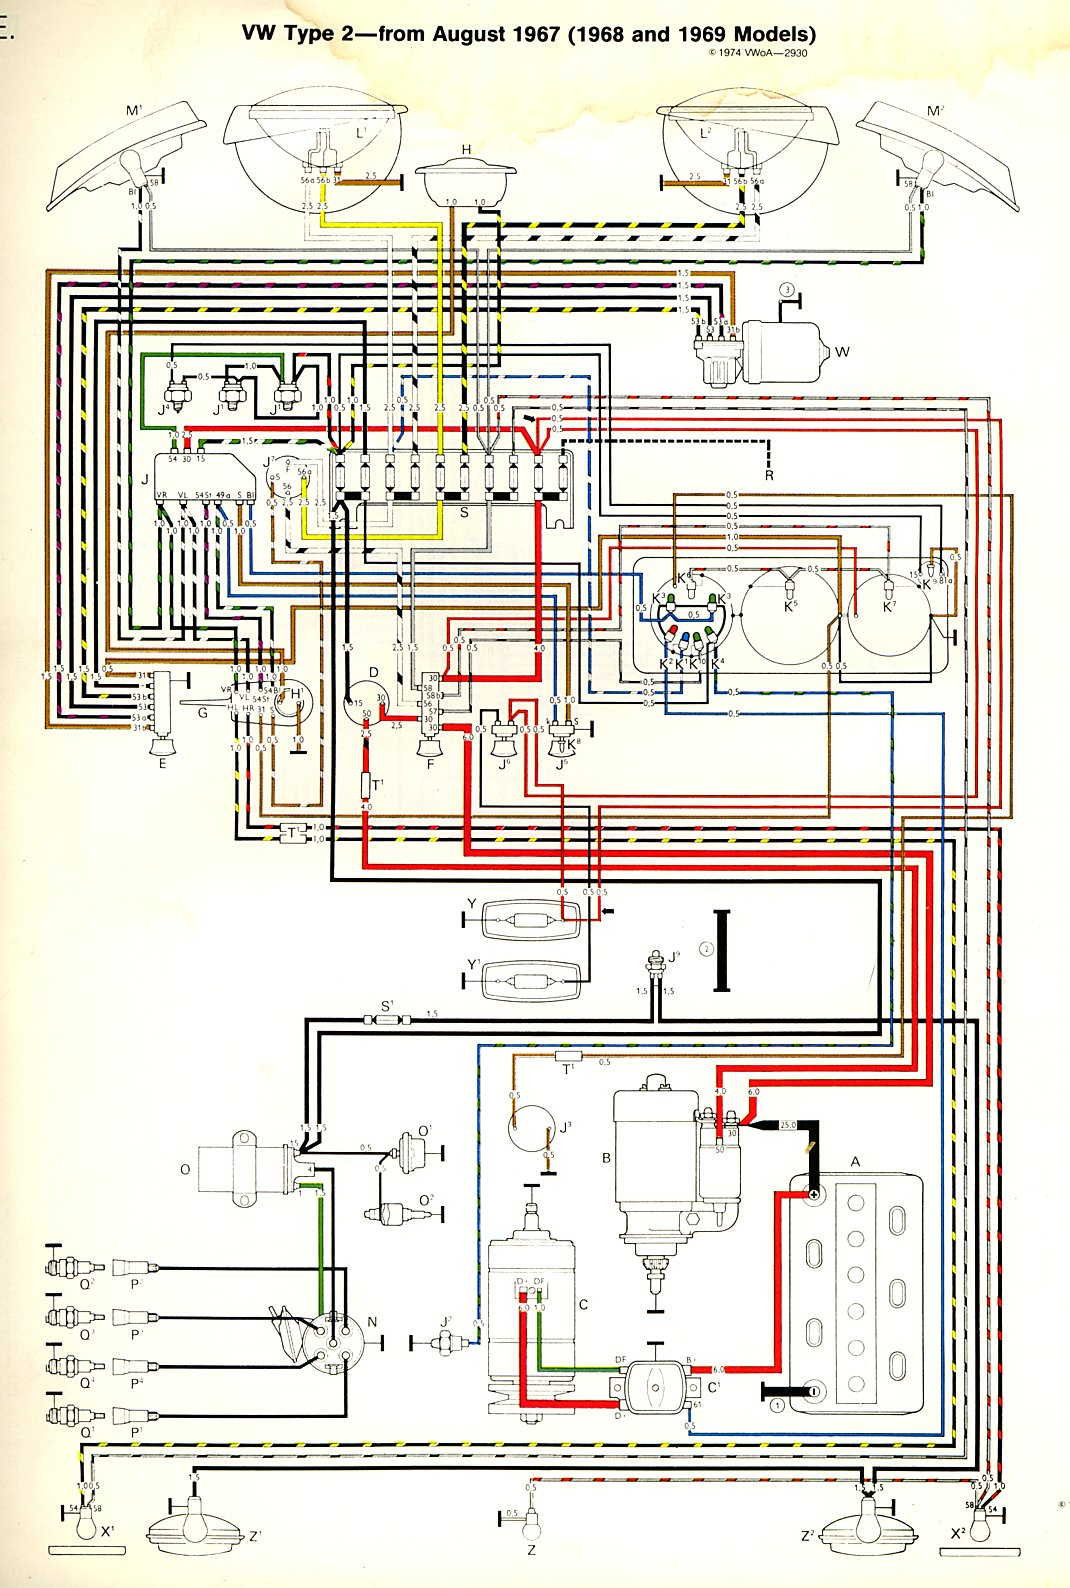 baybus_6869a 74 vw bug wiring diagram cardboard tube support diagram \u2022 free Wiring Harness Diagram at honlapkeszites.co